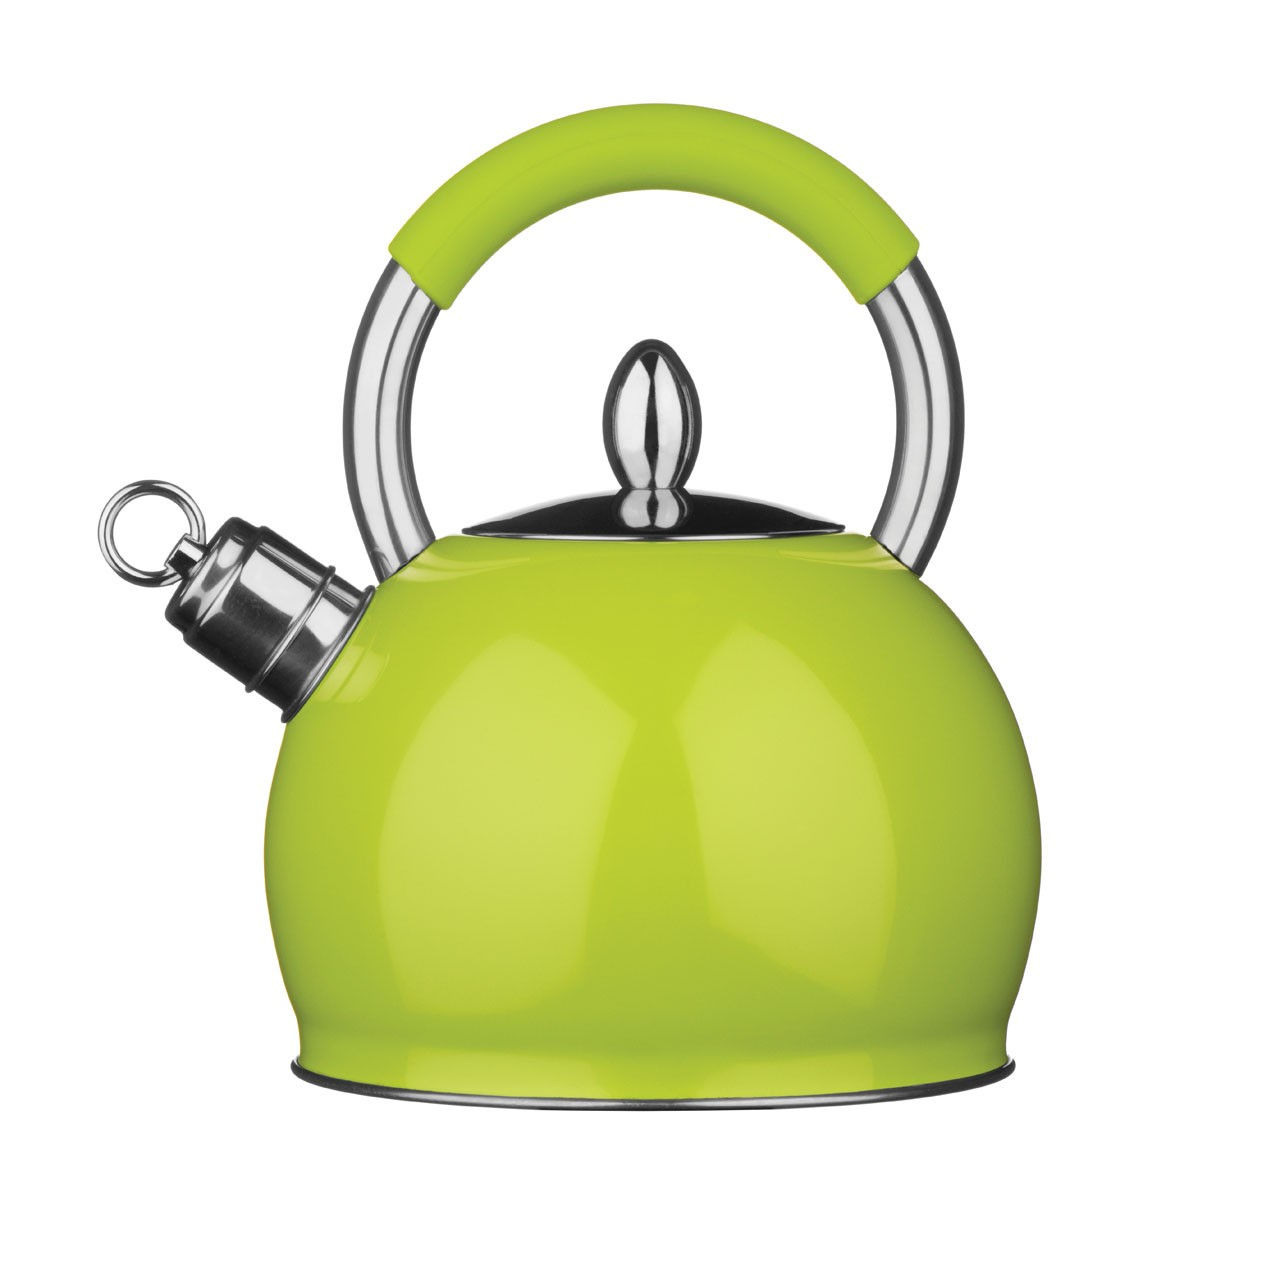 3 Litre Whistling Kettle - Lime Green and Stainless Steel